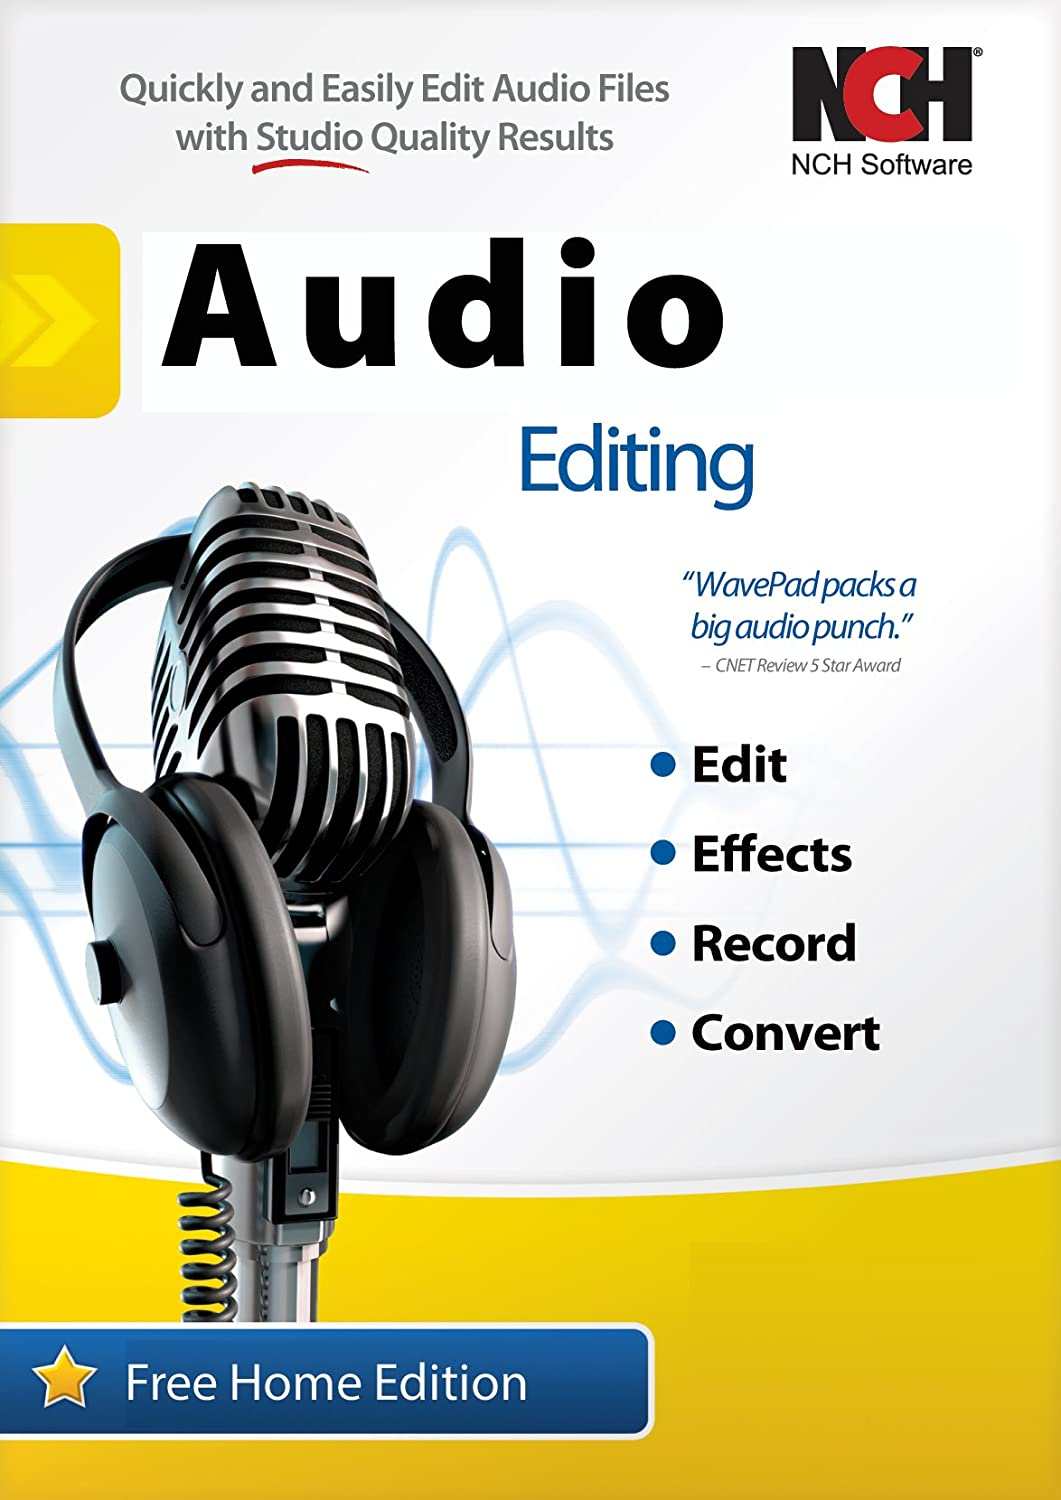 nch audio software free download